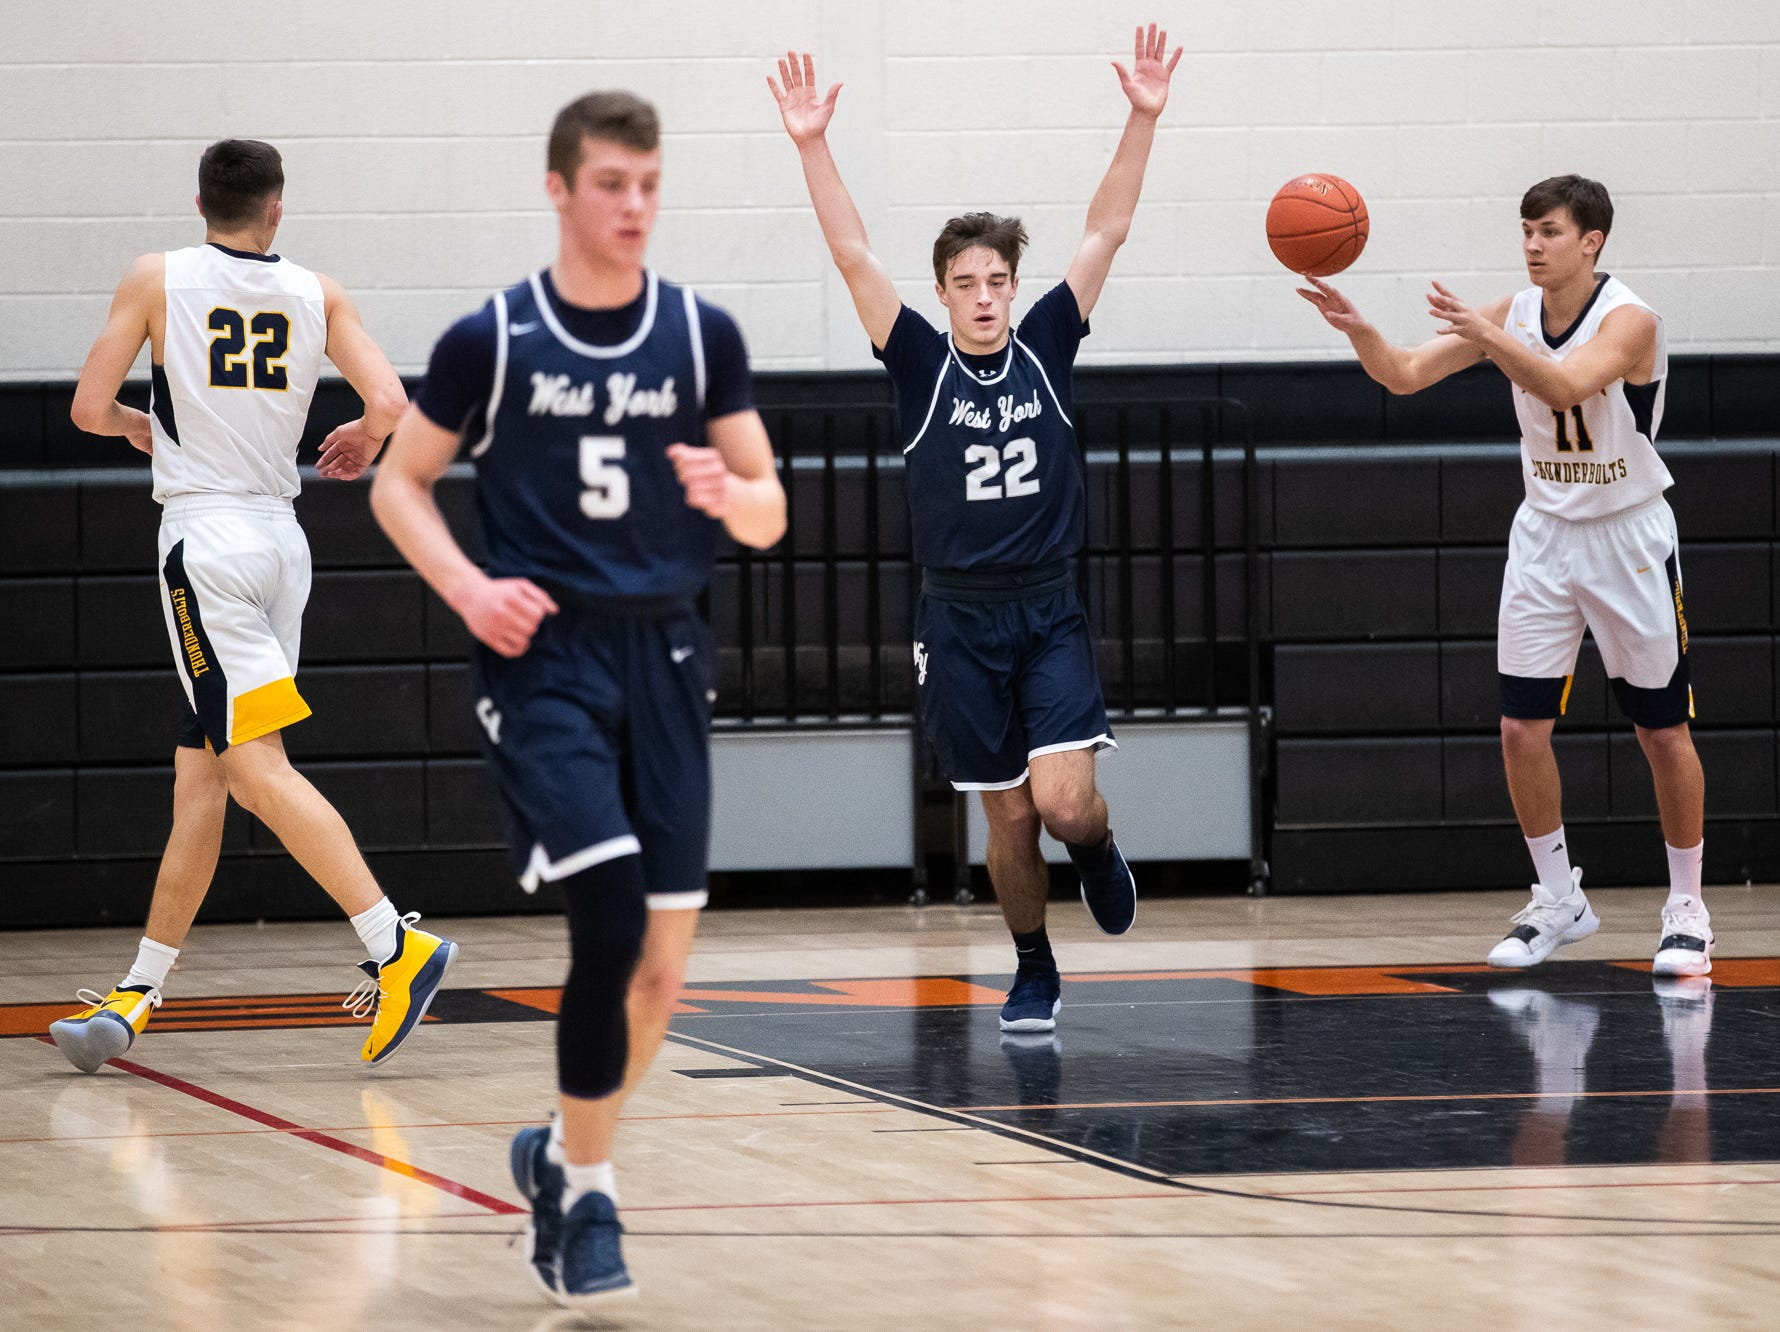 West York's Alex McClellan (22) throws his hands in the air after scoring during the first half of the YAIAA boys' basketball quarterfinals between Littlestown and West York, Saturday, Feb. 9, 2019, at Central York High School. West York led Littlestown 33-31 at the half.